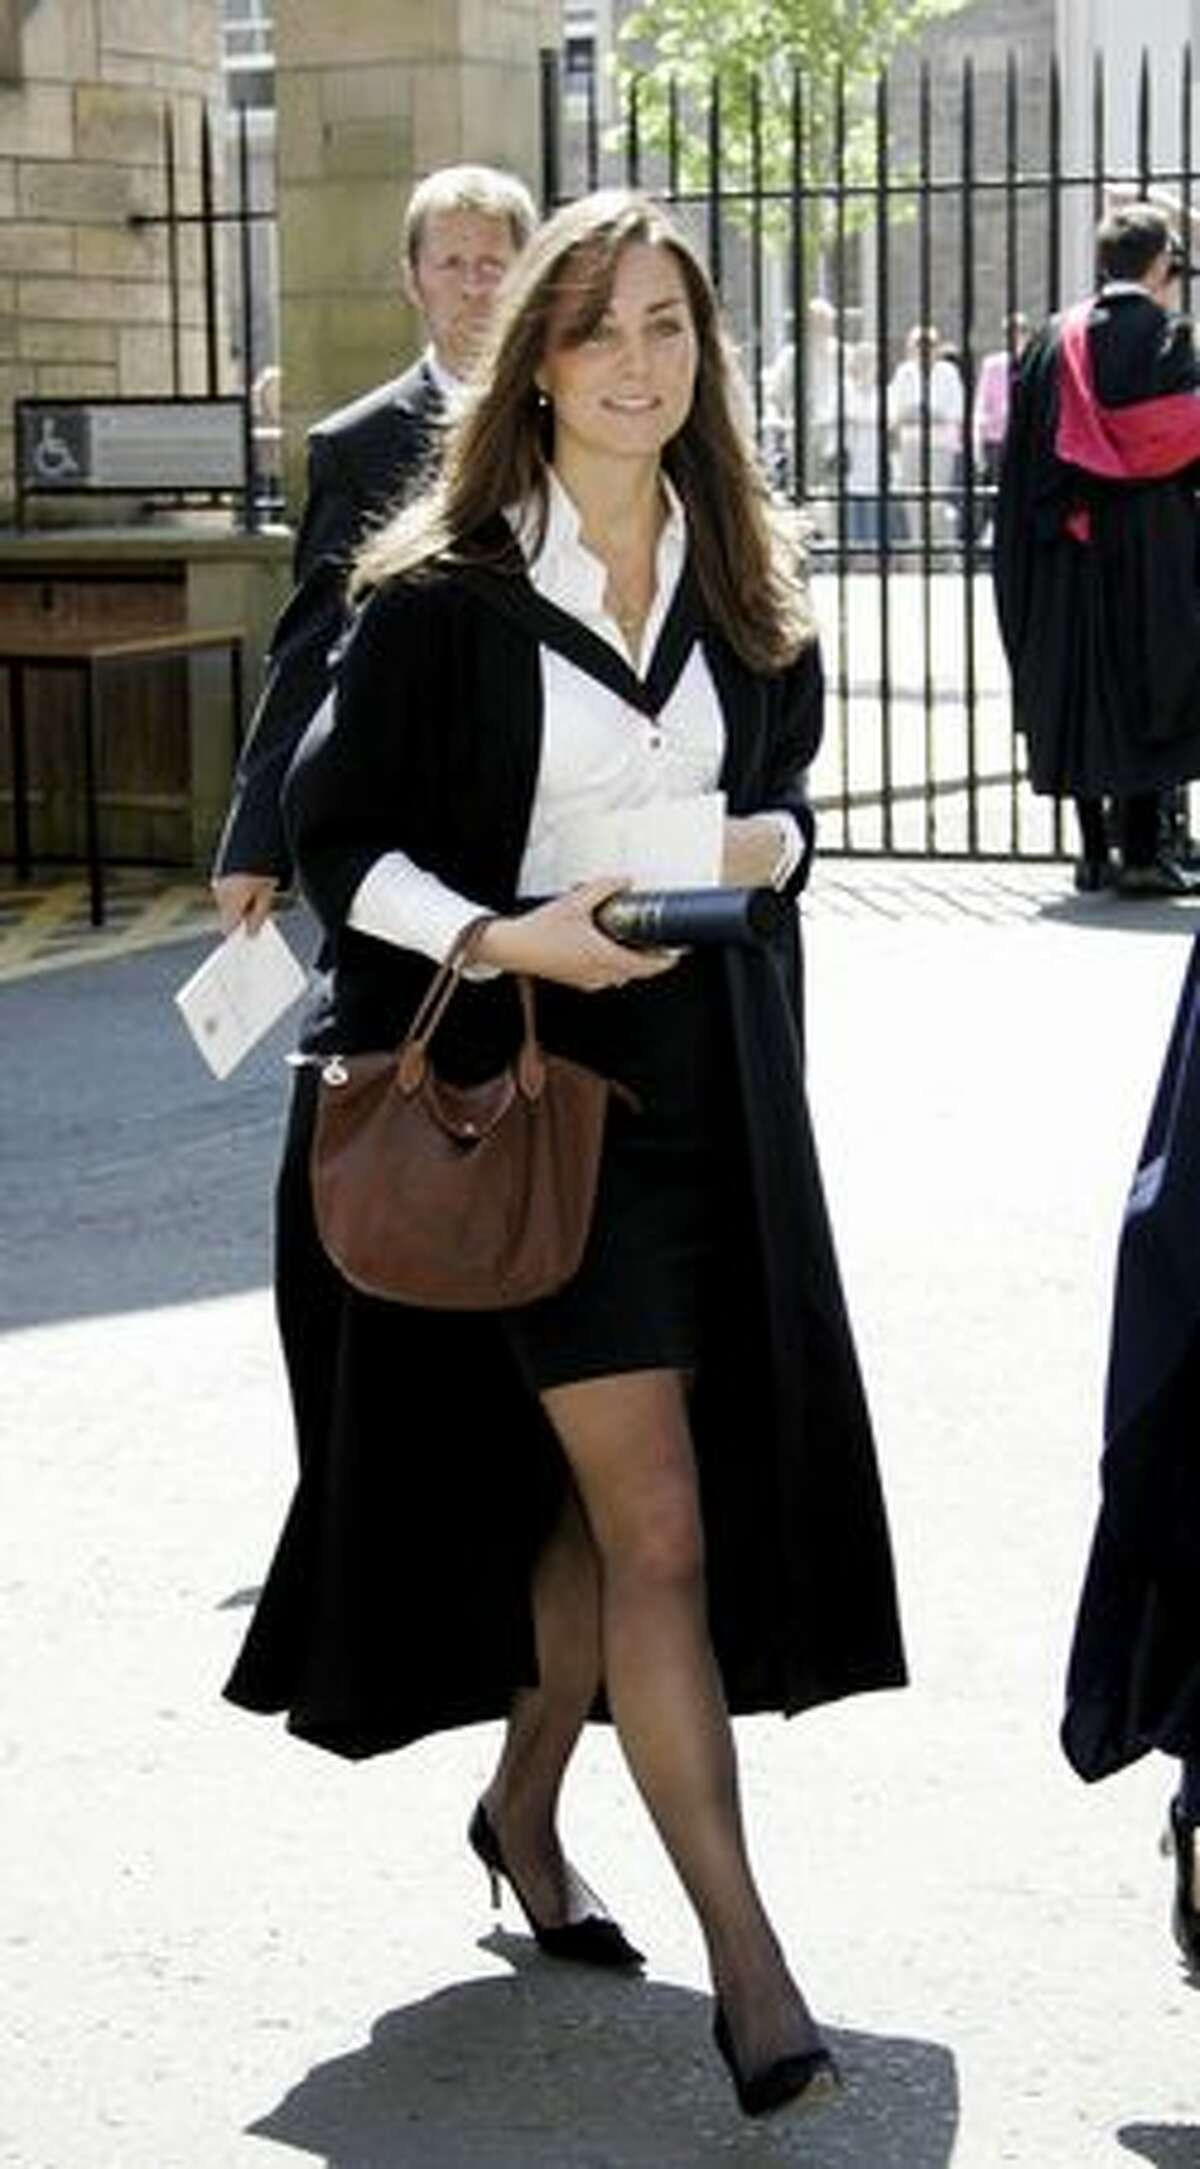 Kate Middleton walks during her graduation ceremony at St. Andrews, Scotland, June 23, 2005.